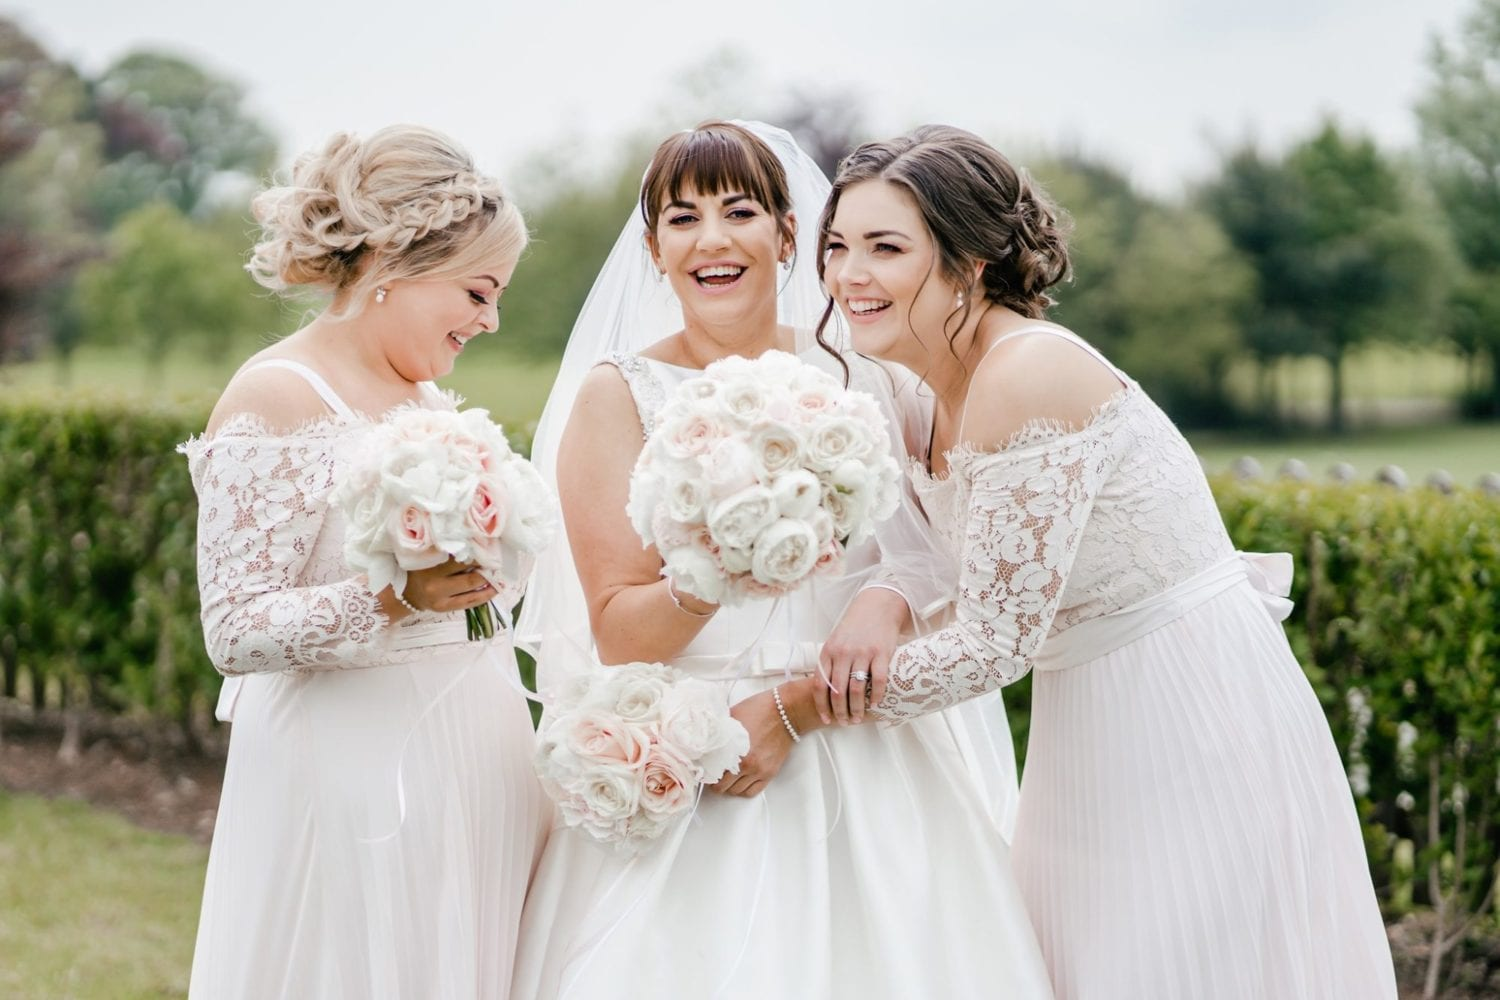 Cottrell Park Wedding Showcase January 2020 - bride and bridesmaids laughing